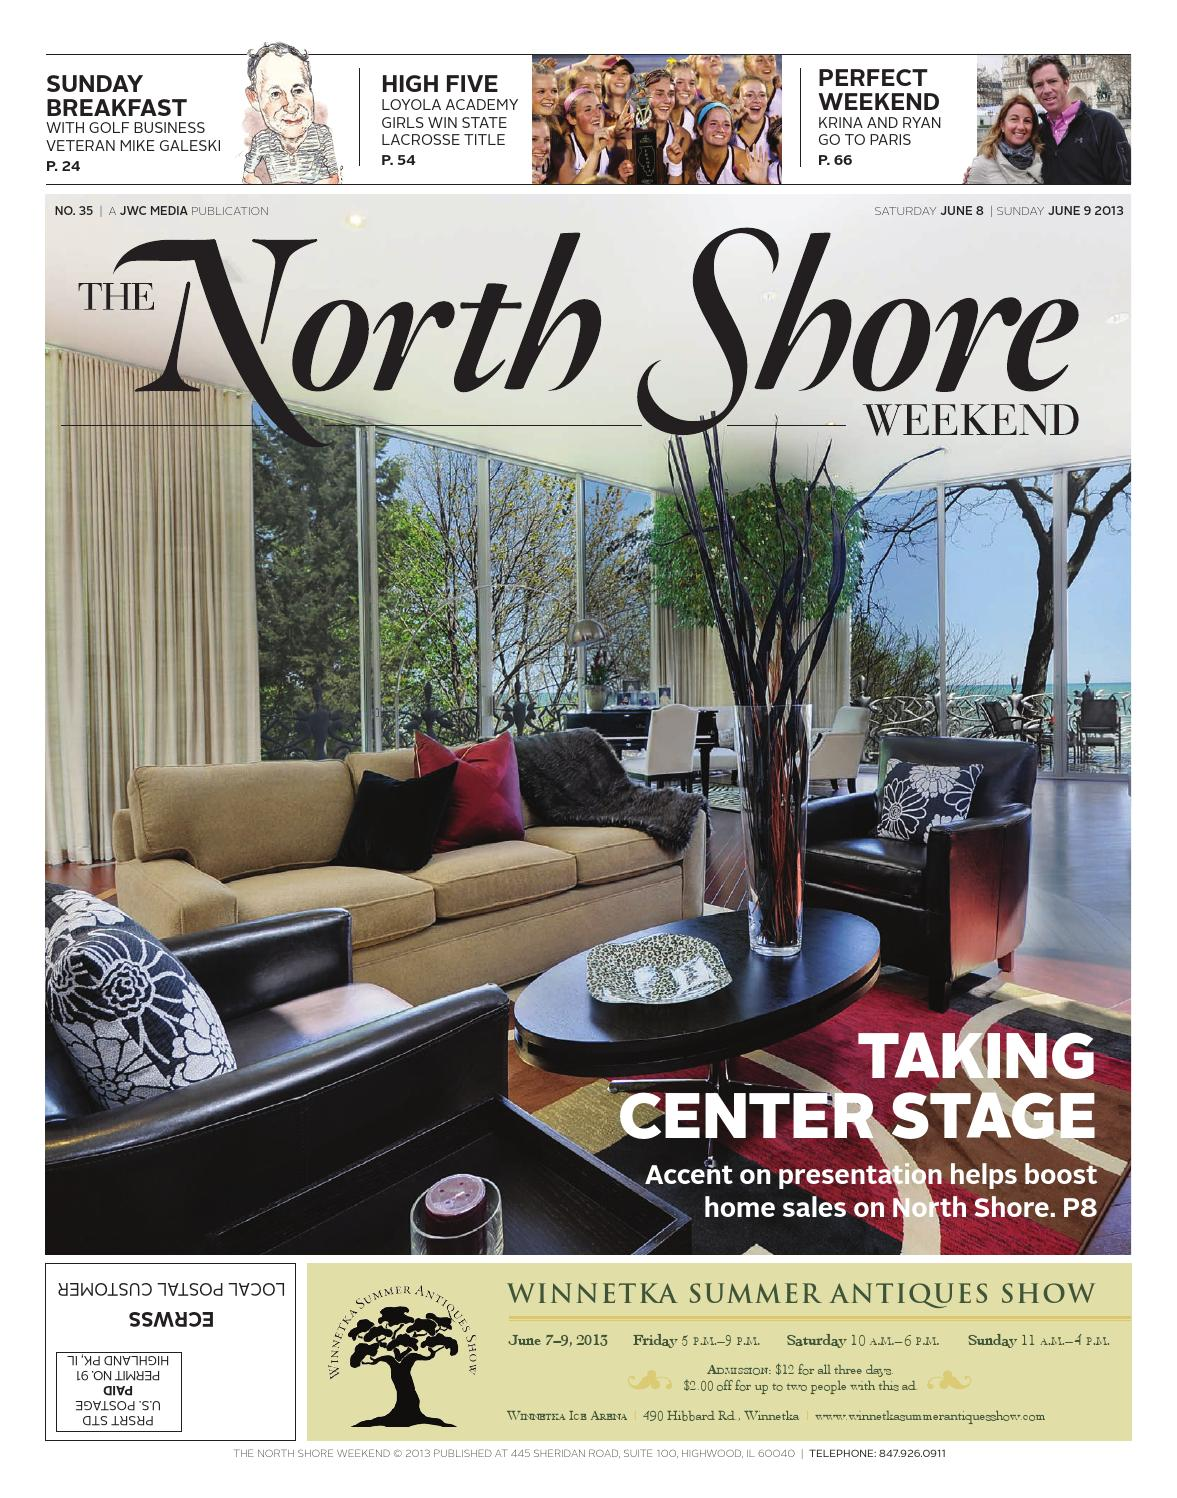 The North Shore Weekend East Issue 35 By Jwc Media Issuu